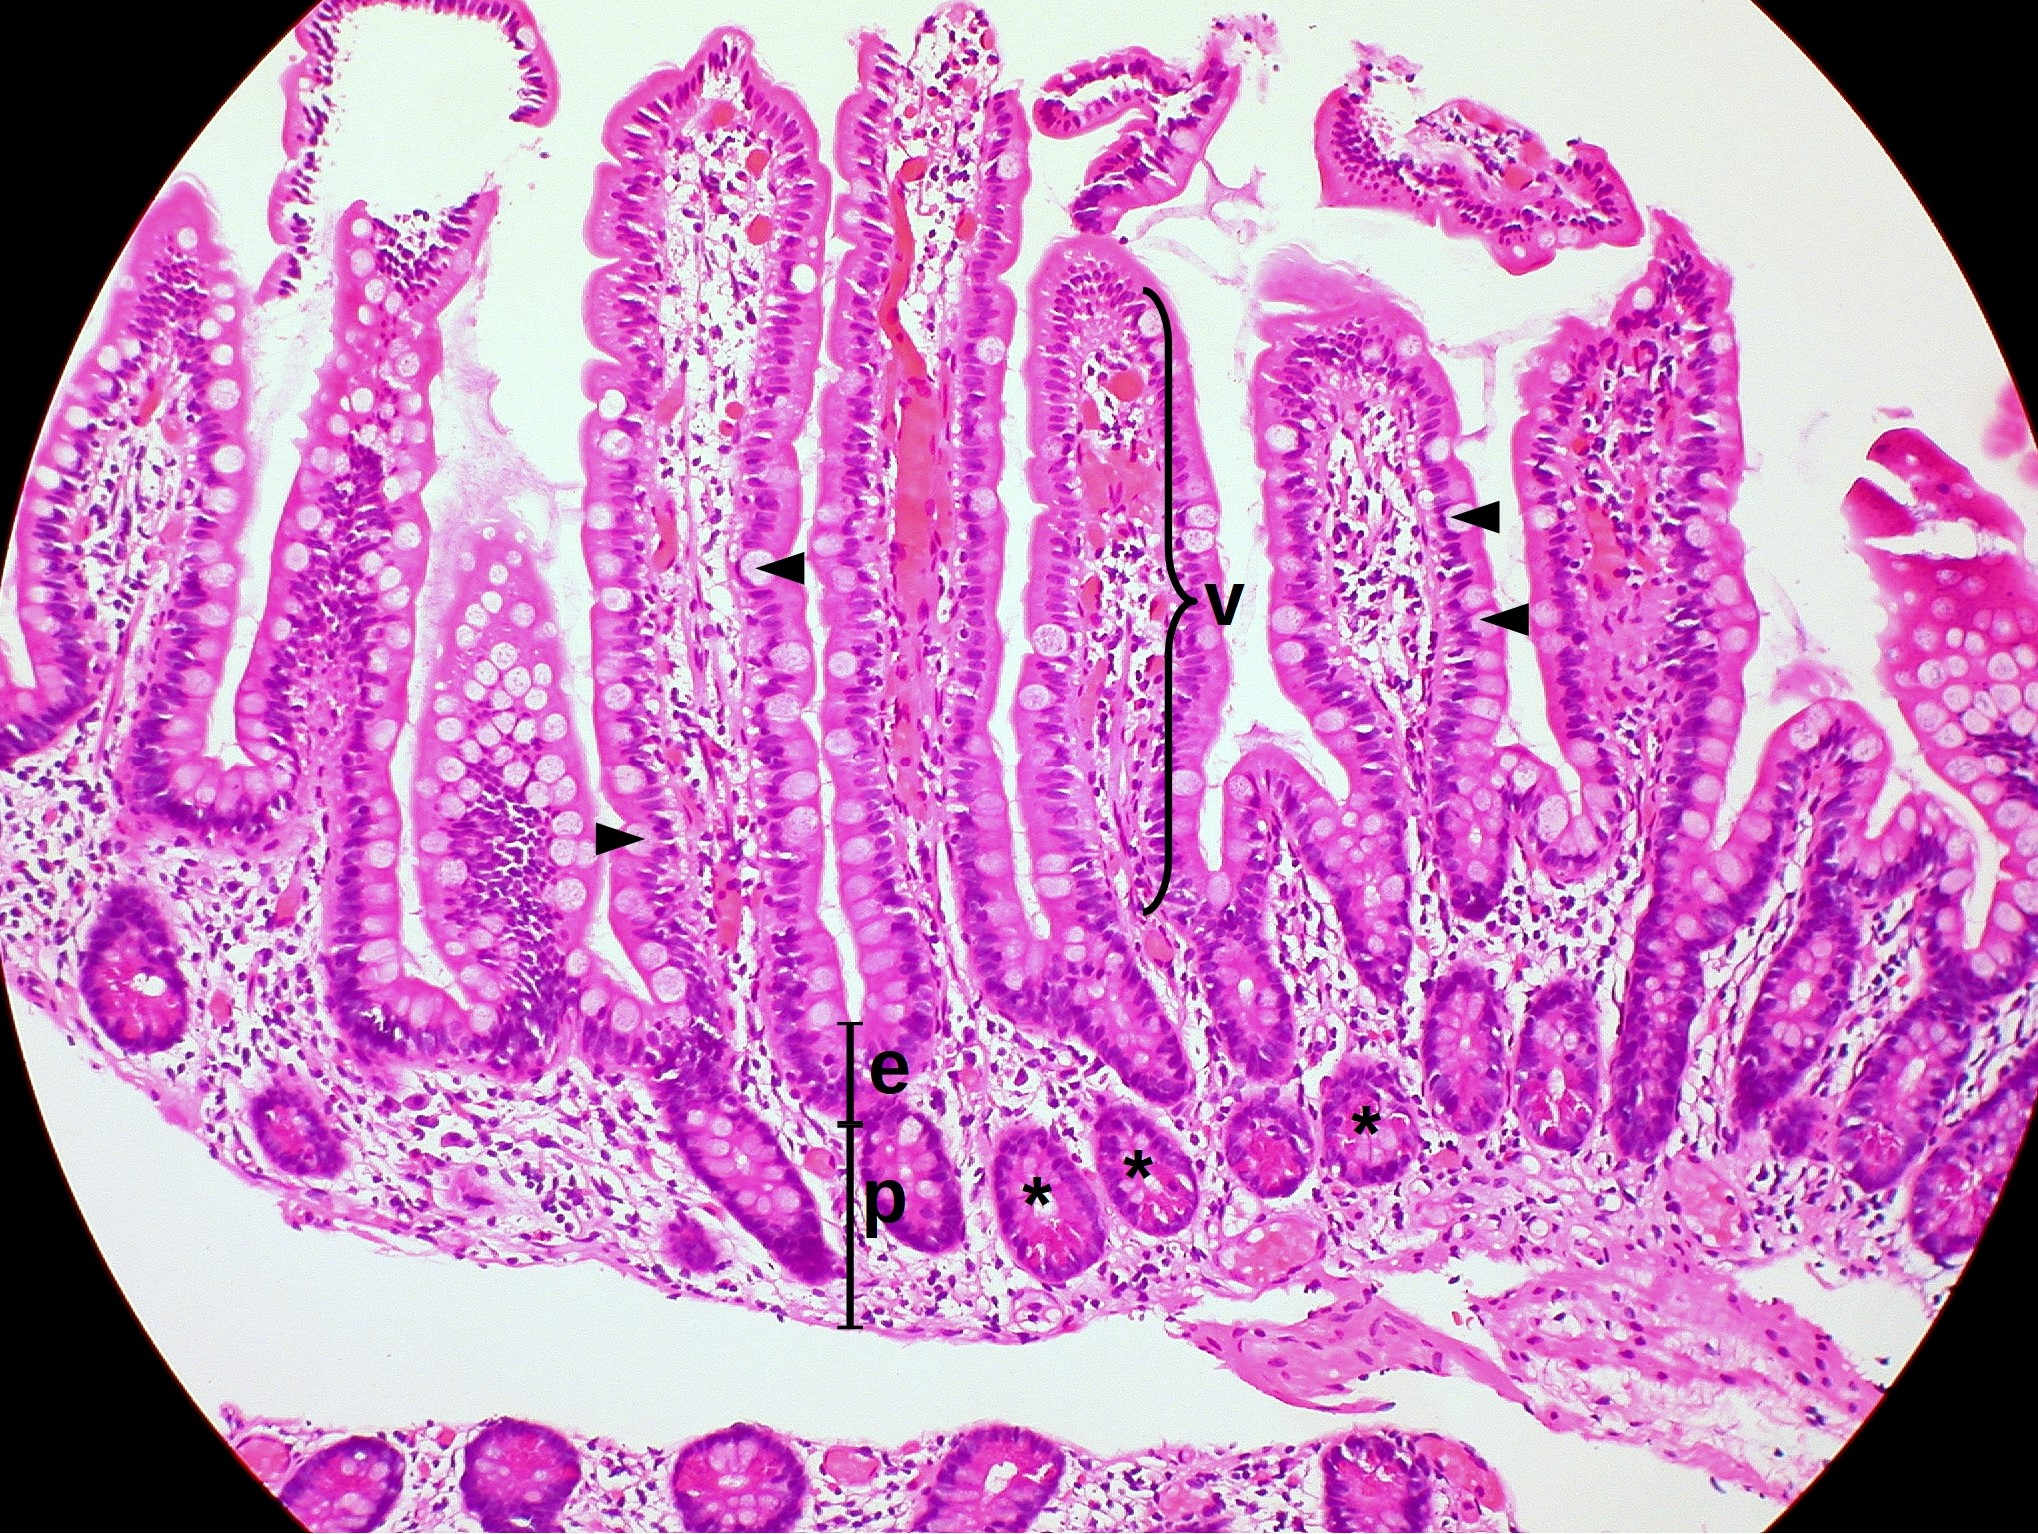 Normal Small Intestine Mucosa (5916217283).jpg